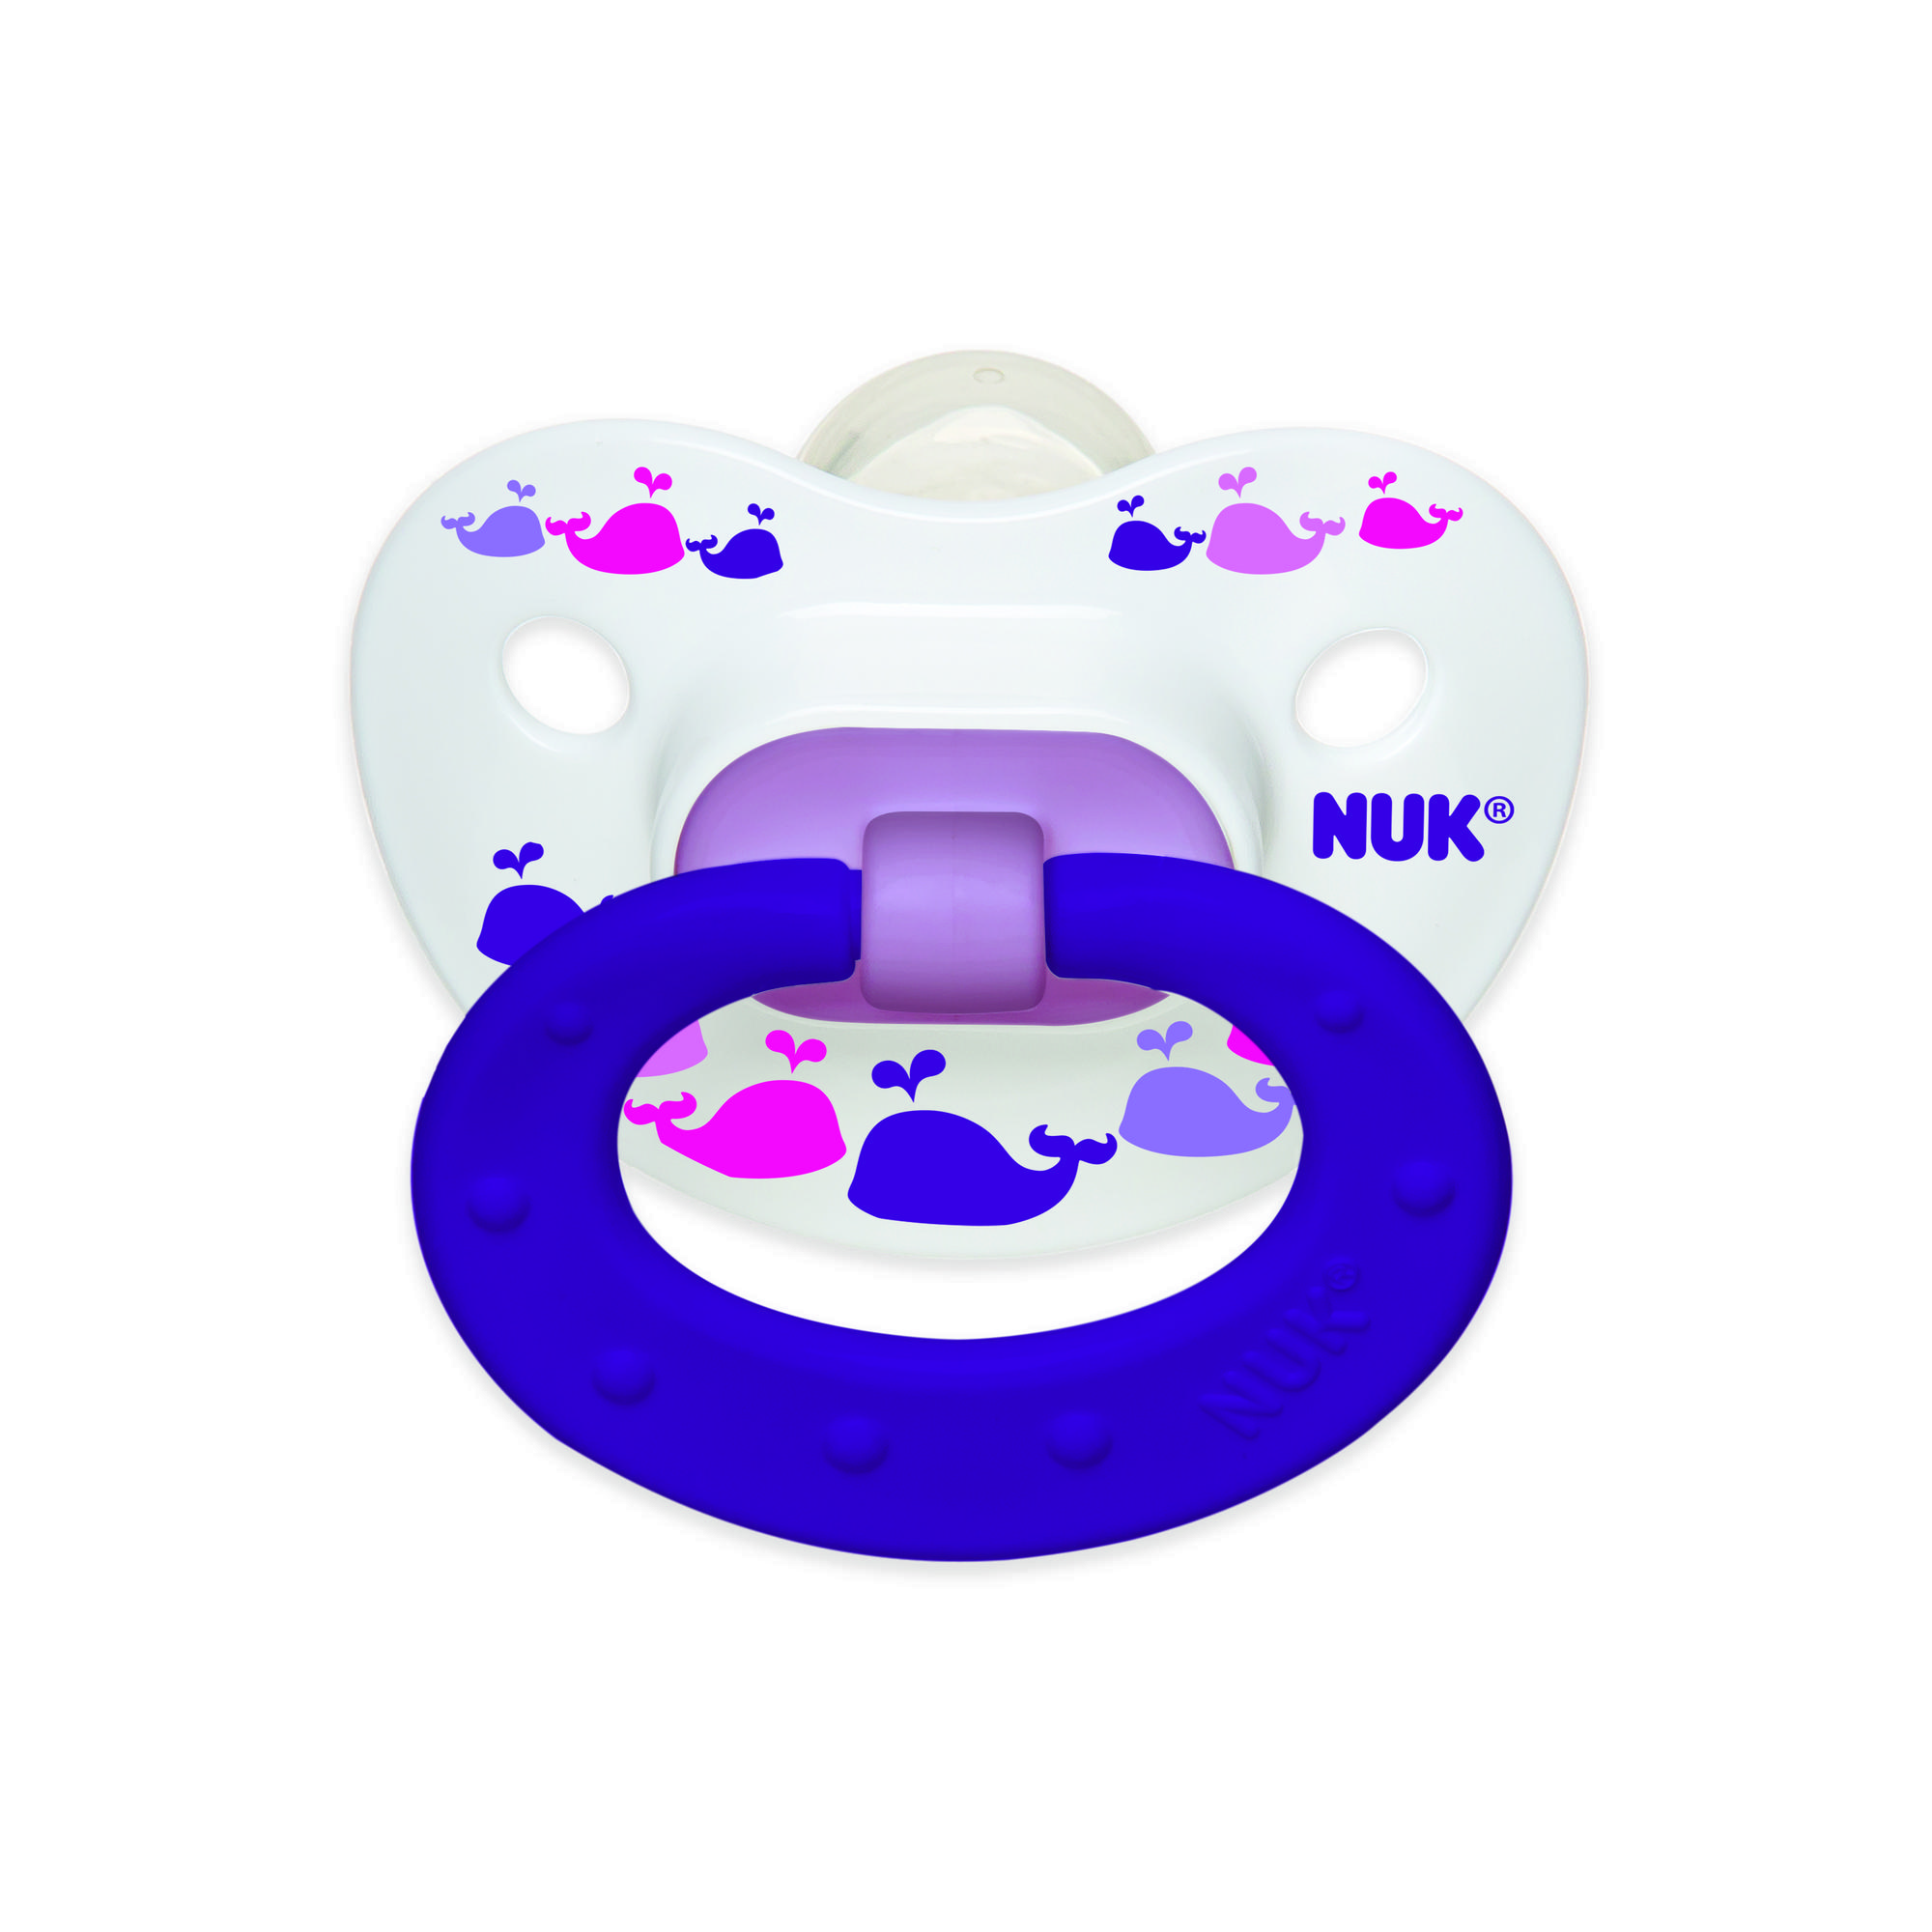 NUK Orthodontic Pacifiers, 18-36 Months - 2 Counts